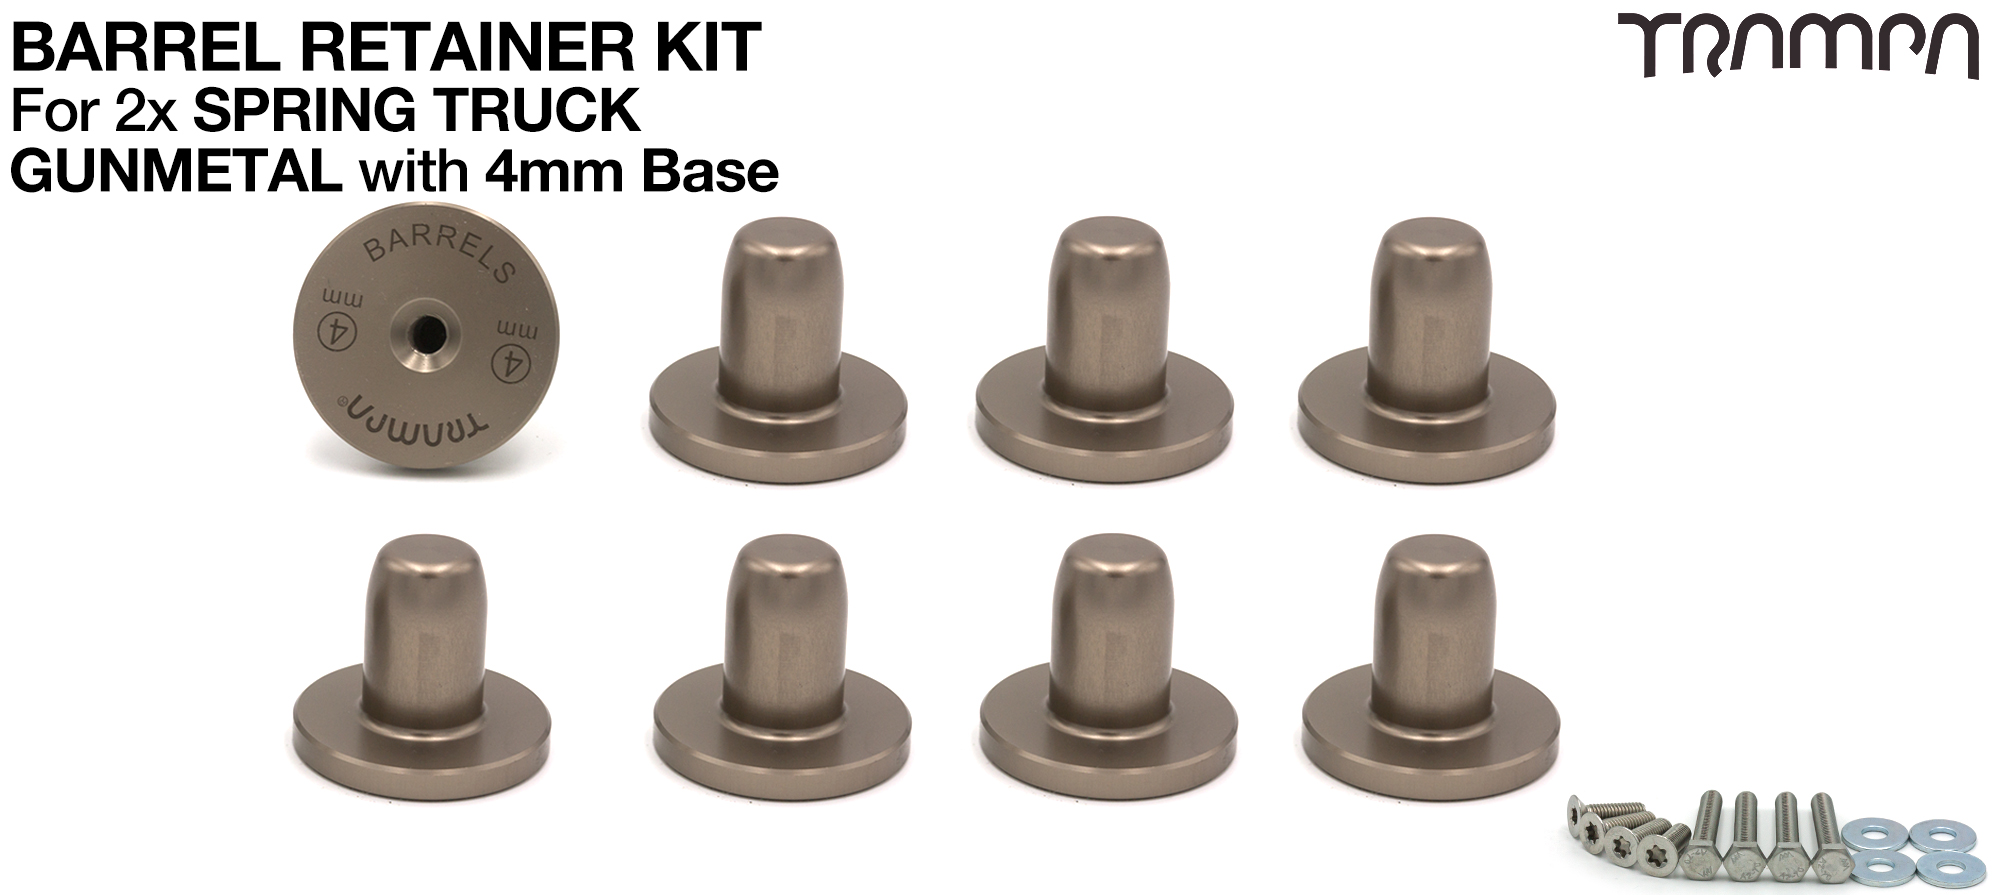 GUNMETAL Barrel Retainers x8 with 4mm Base